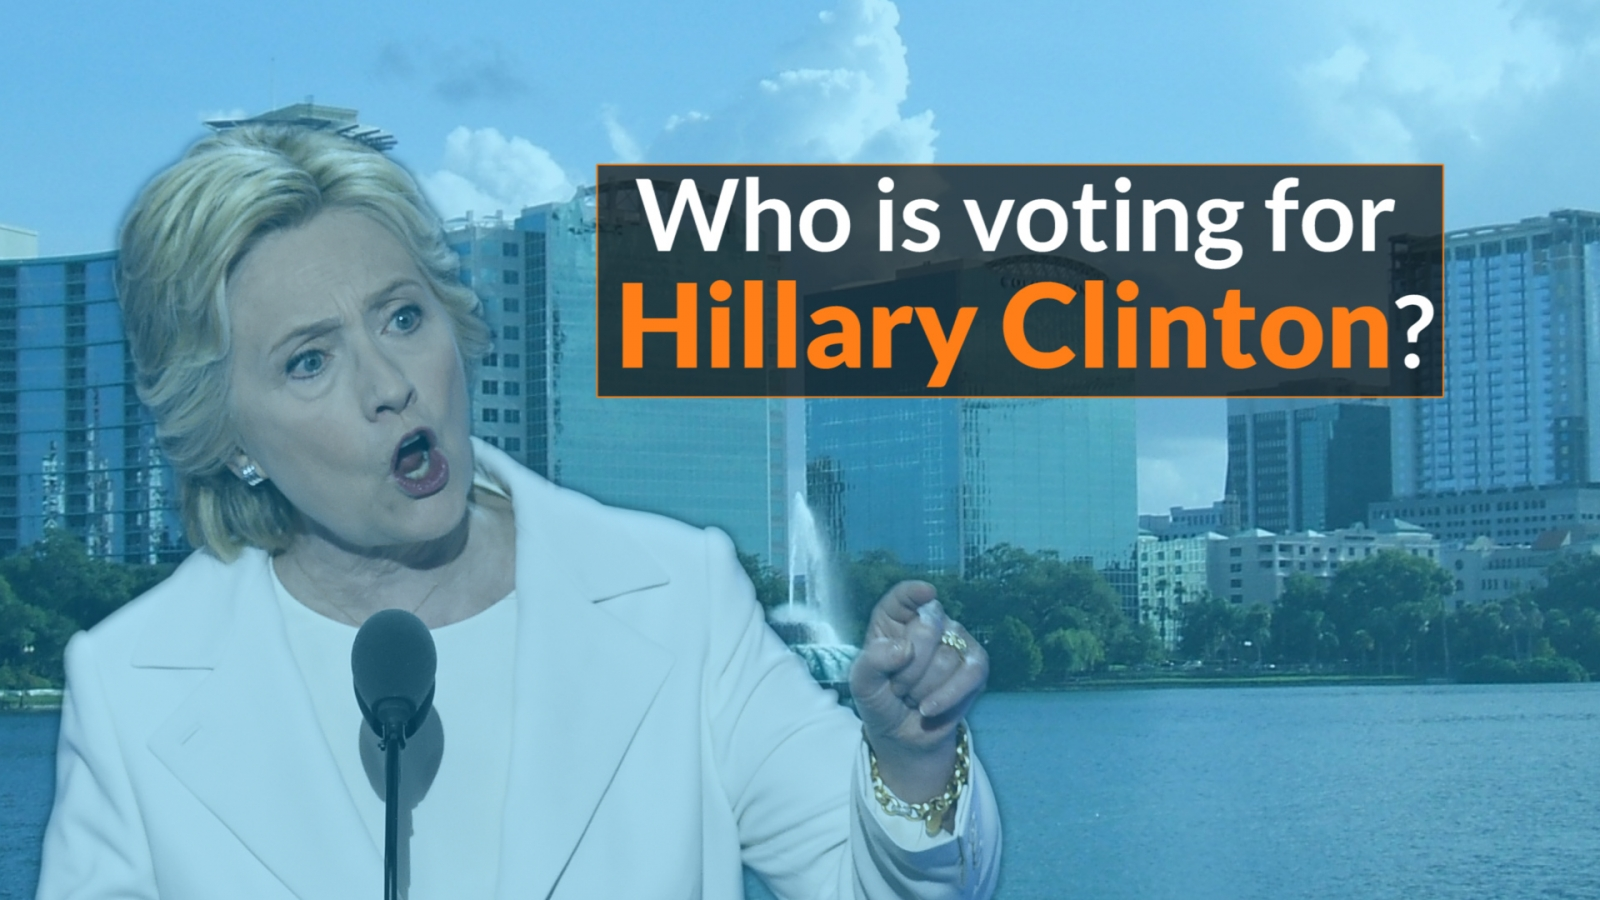 Who is voting for Hillary Clinton?